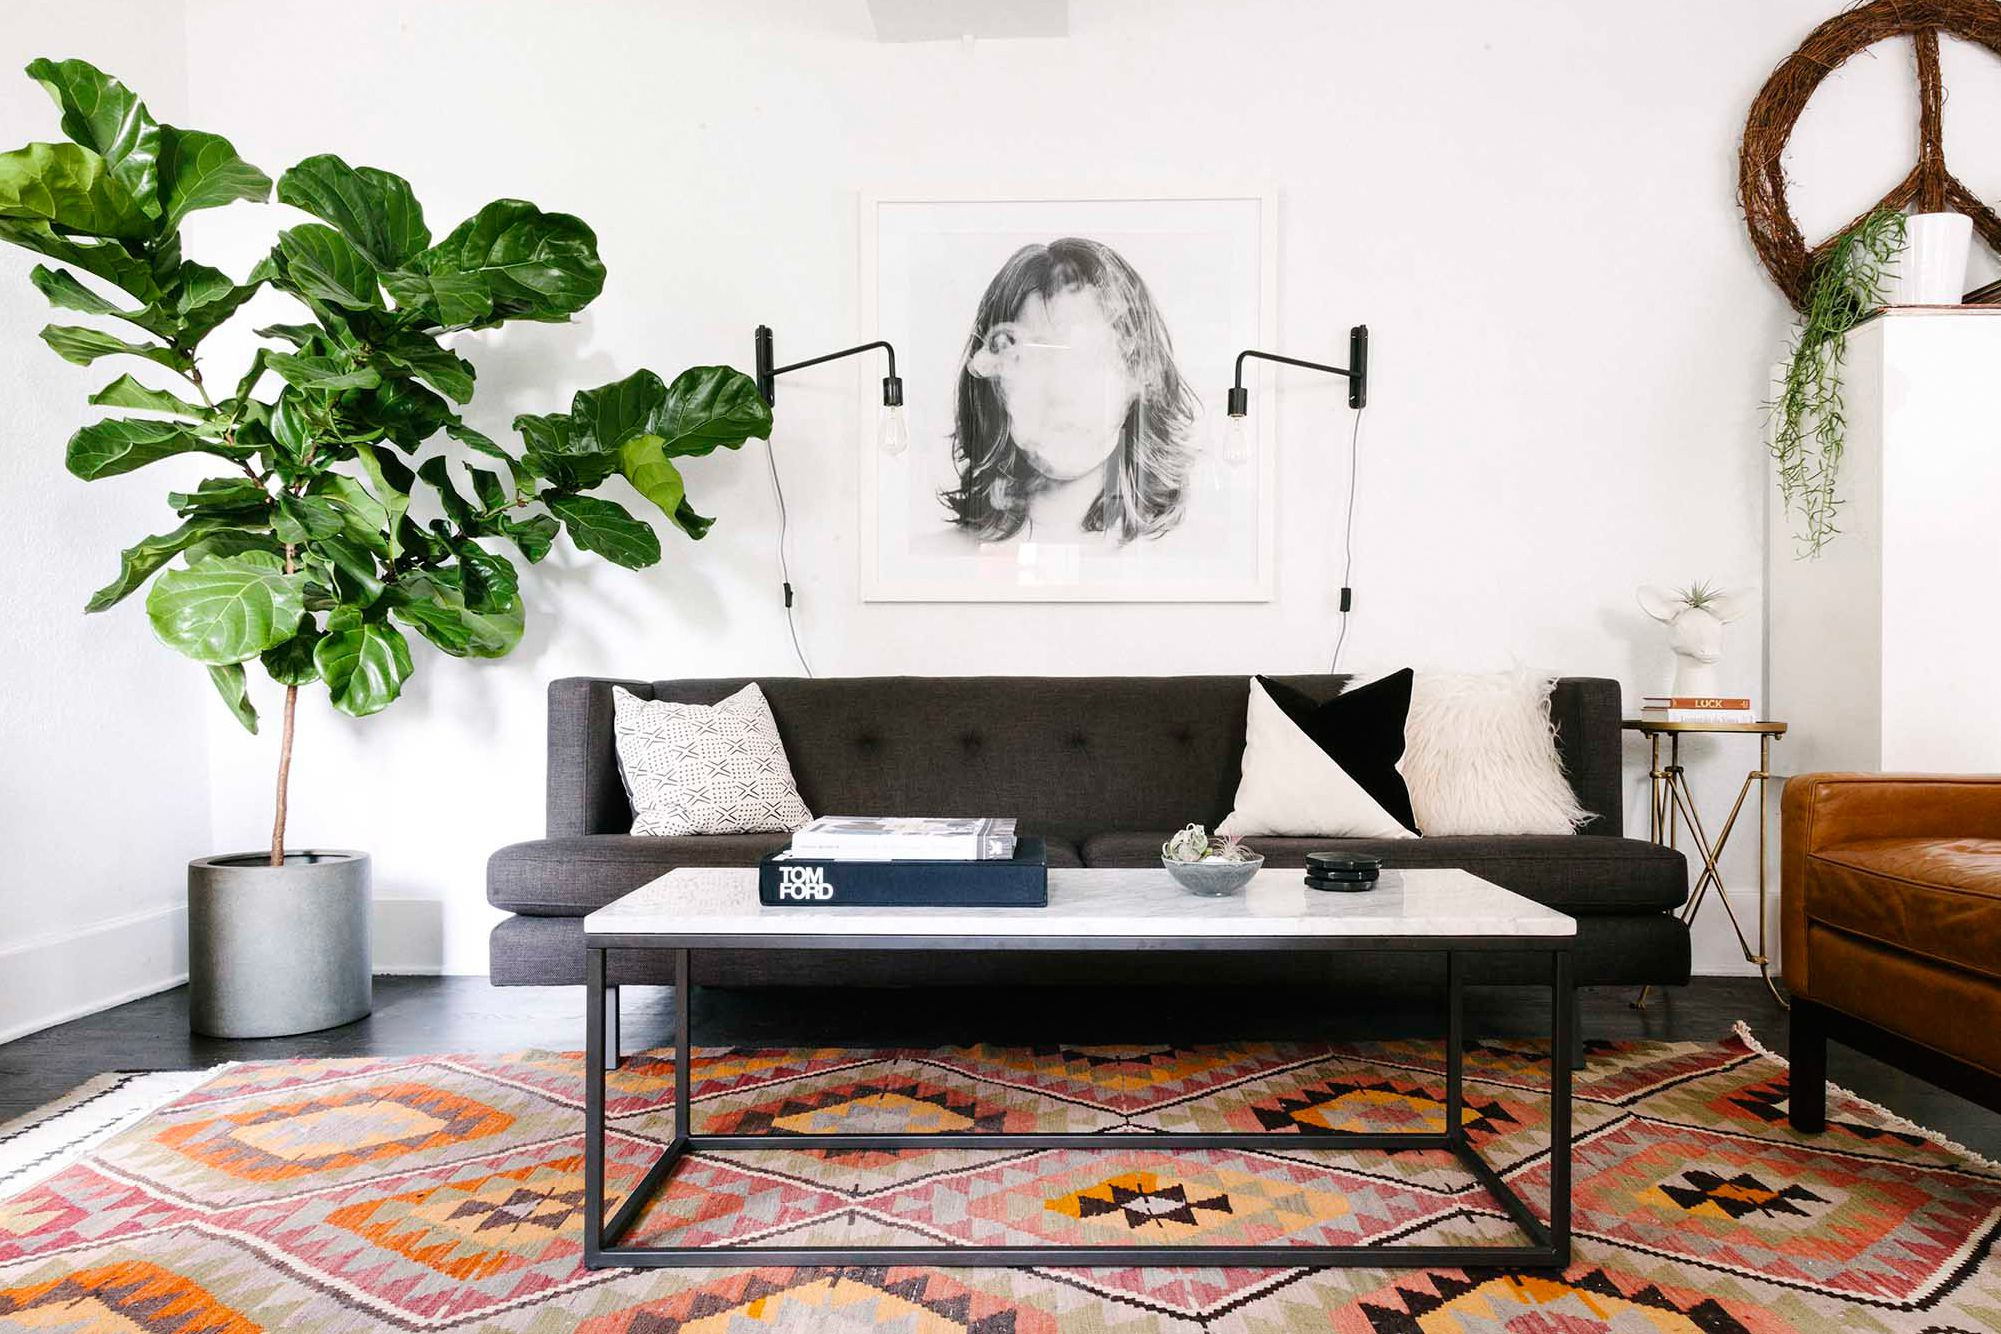 How to decorate a small living room amipublicfo Choice Image